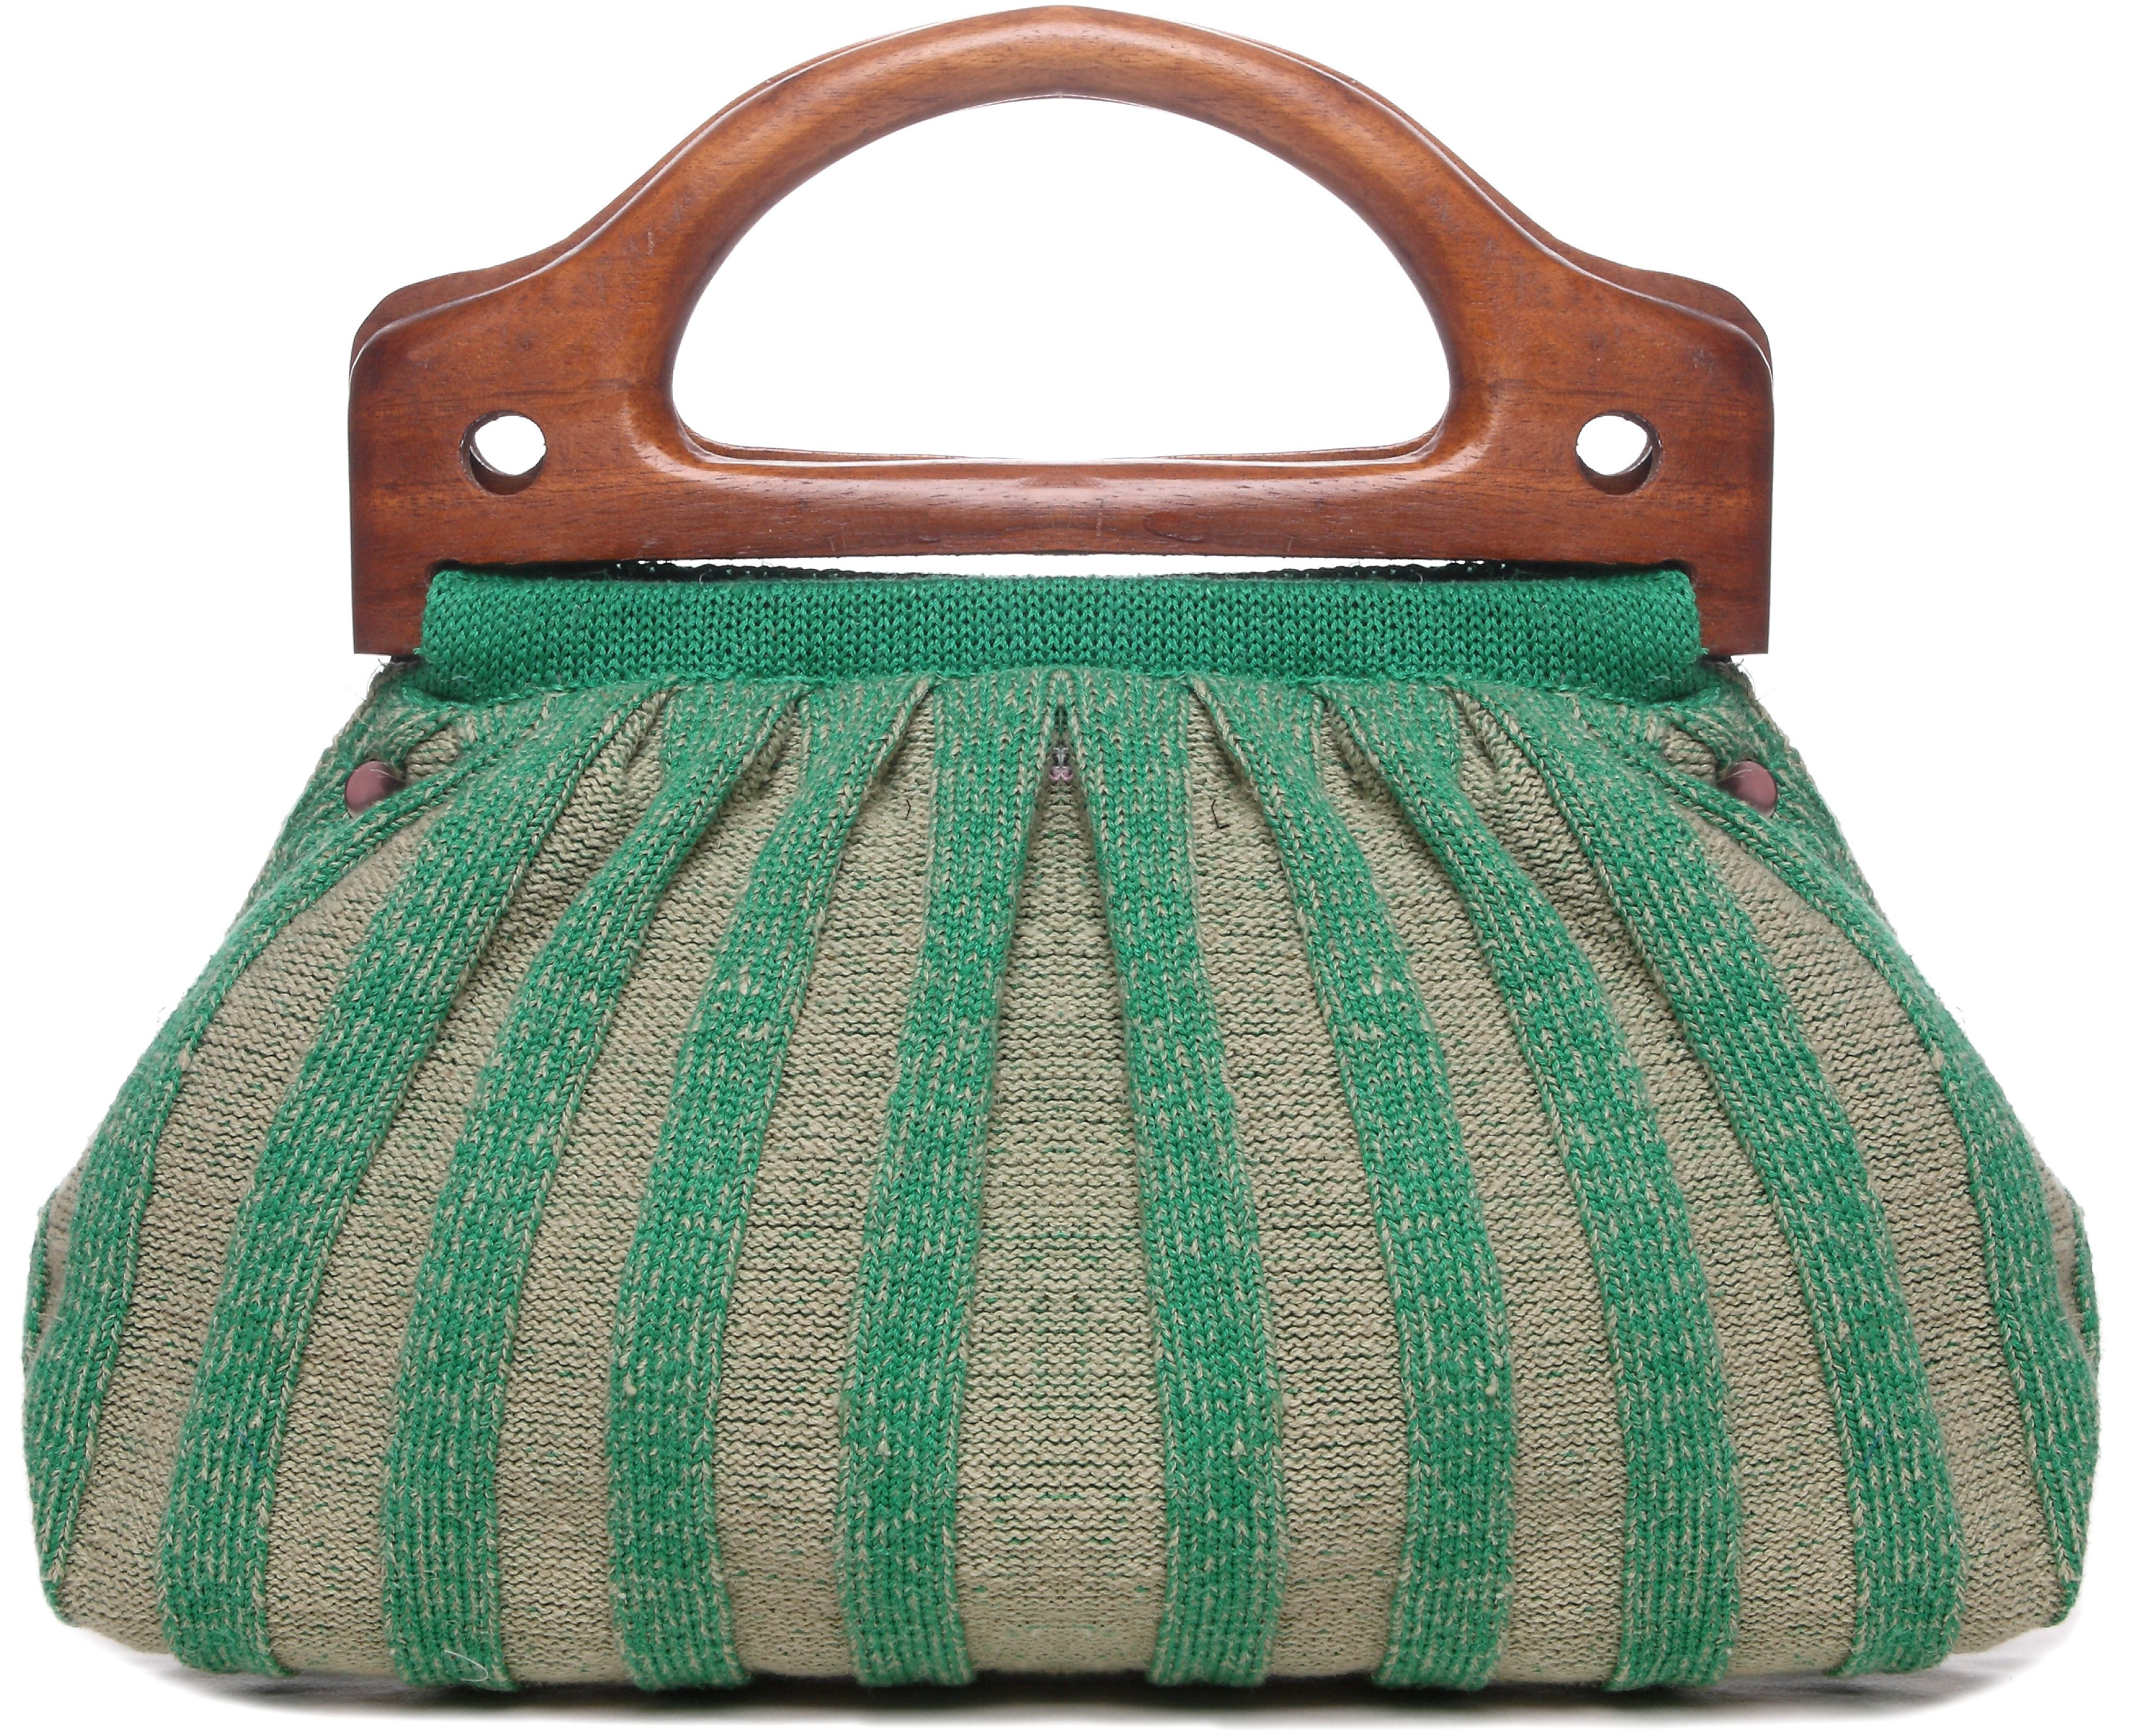 Bag From Pineapple Fiber Pina With Wooden Handle Bags